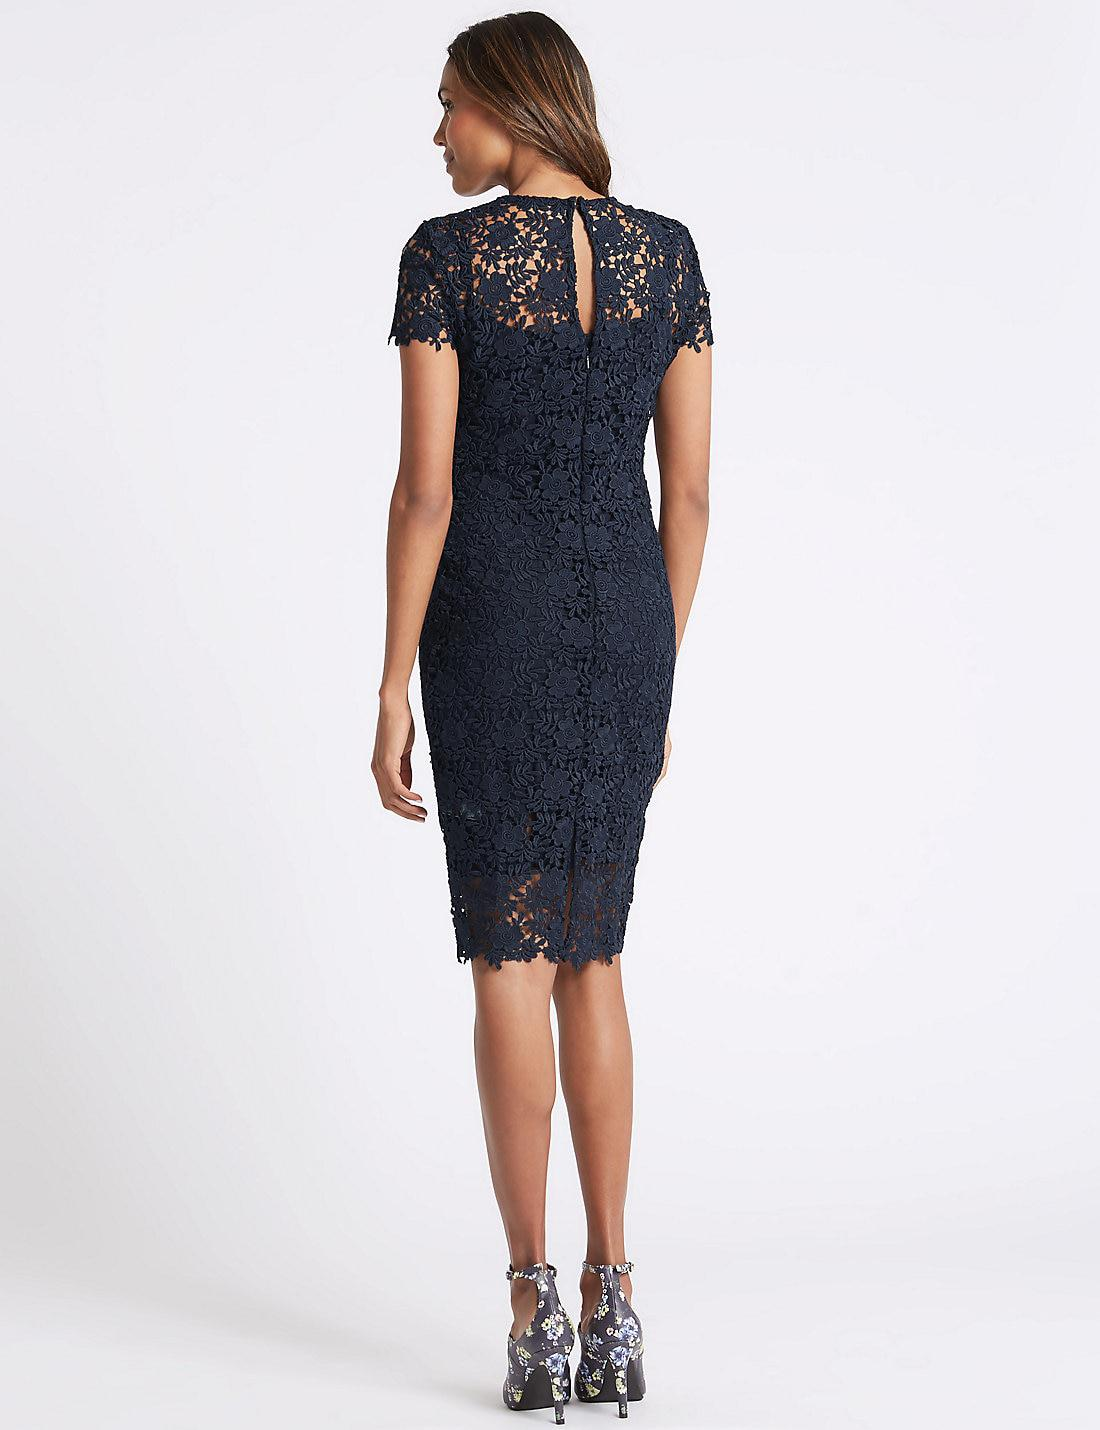 Marks and spencer bodycon dresses in sale